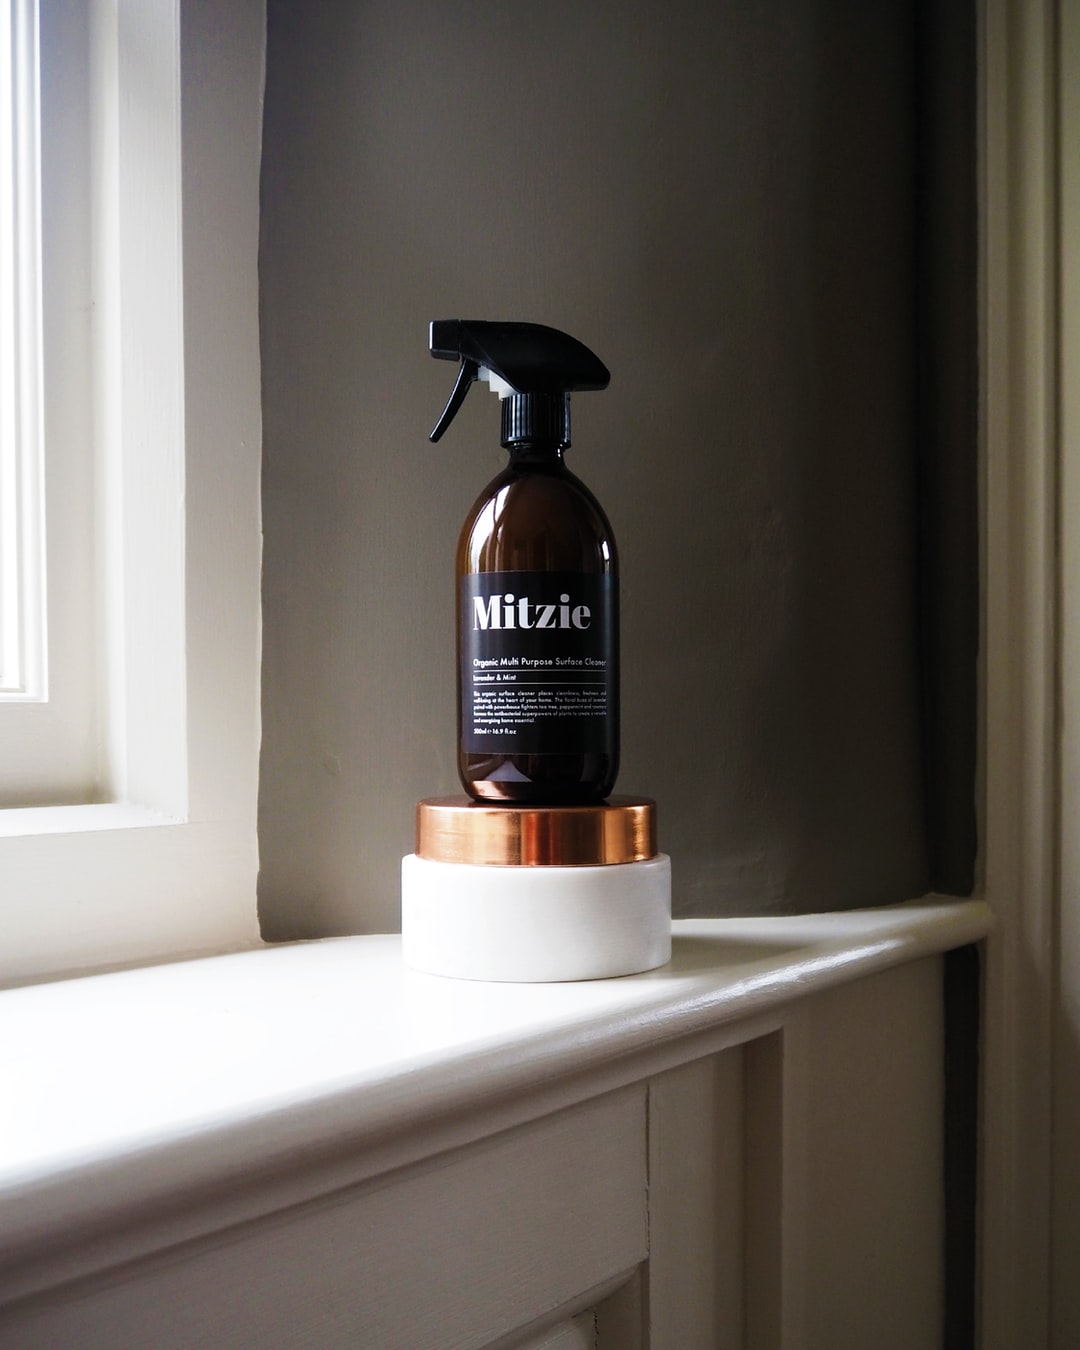 Mitzie Organic Cleaning Products. Packaged in an amber glass bottle to lock in the vegan goodness.